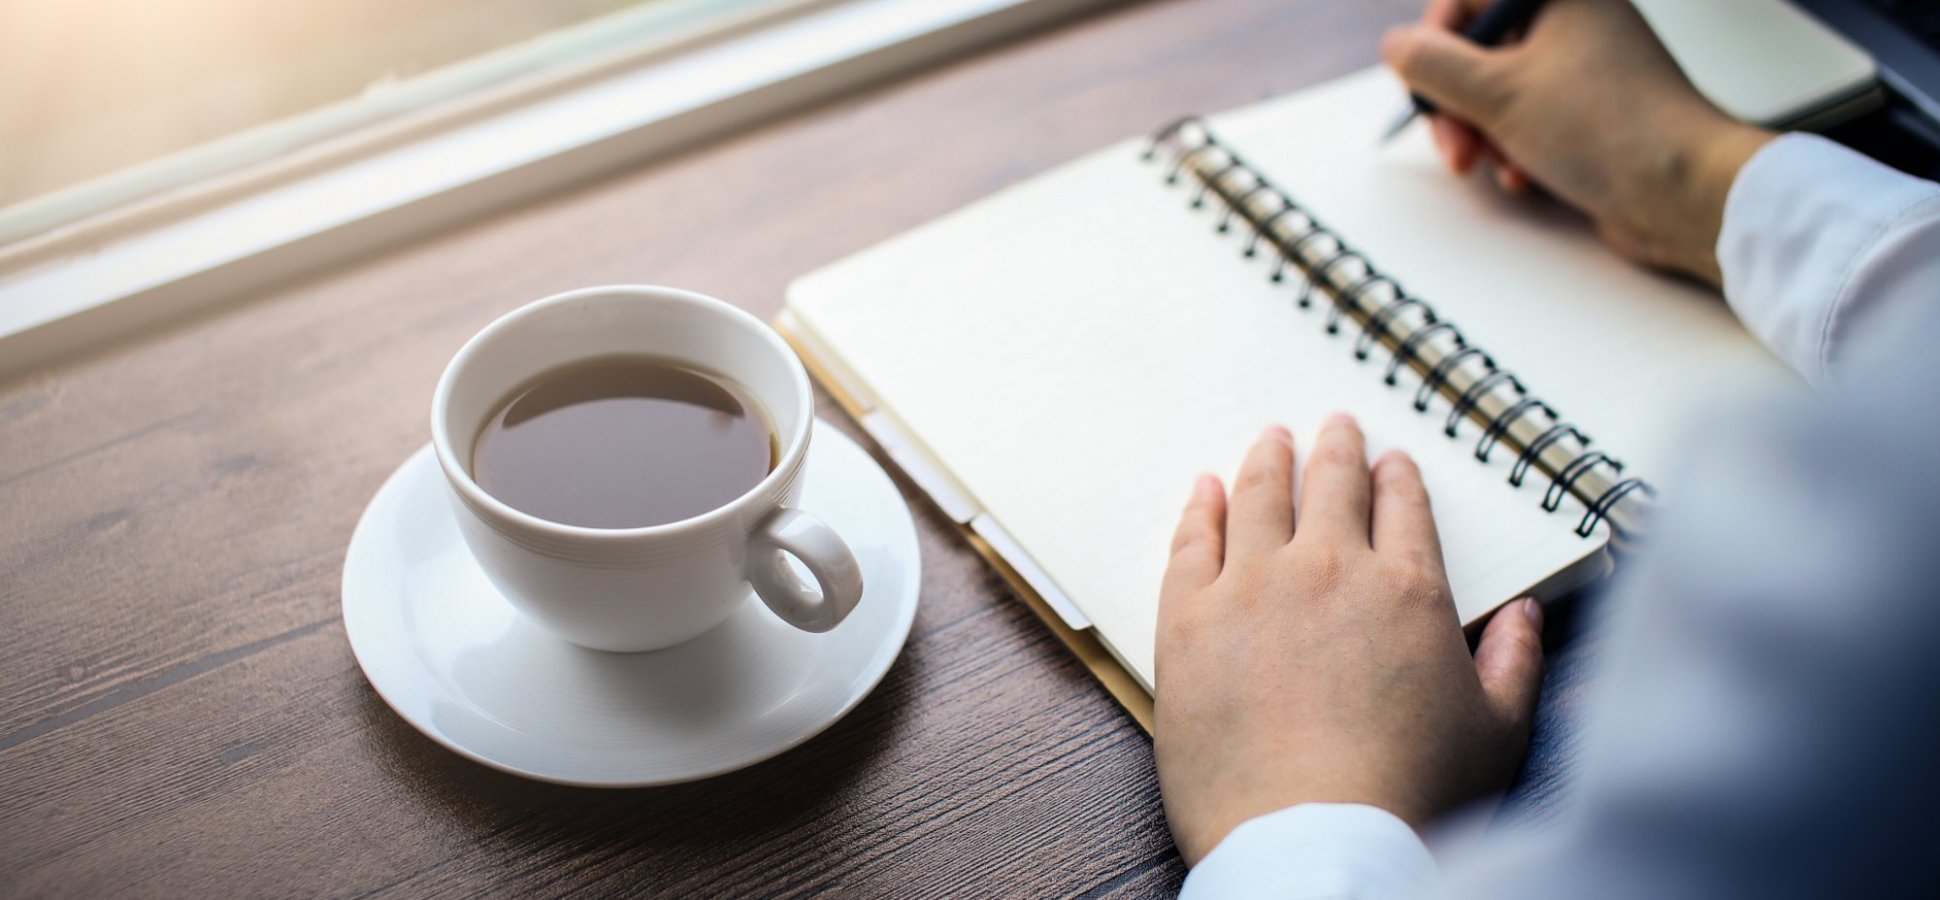 This 5-Minute Habit Will Train Your Brain to Be More Positive